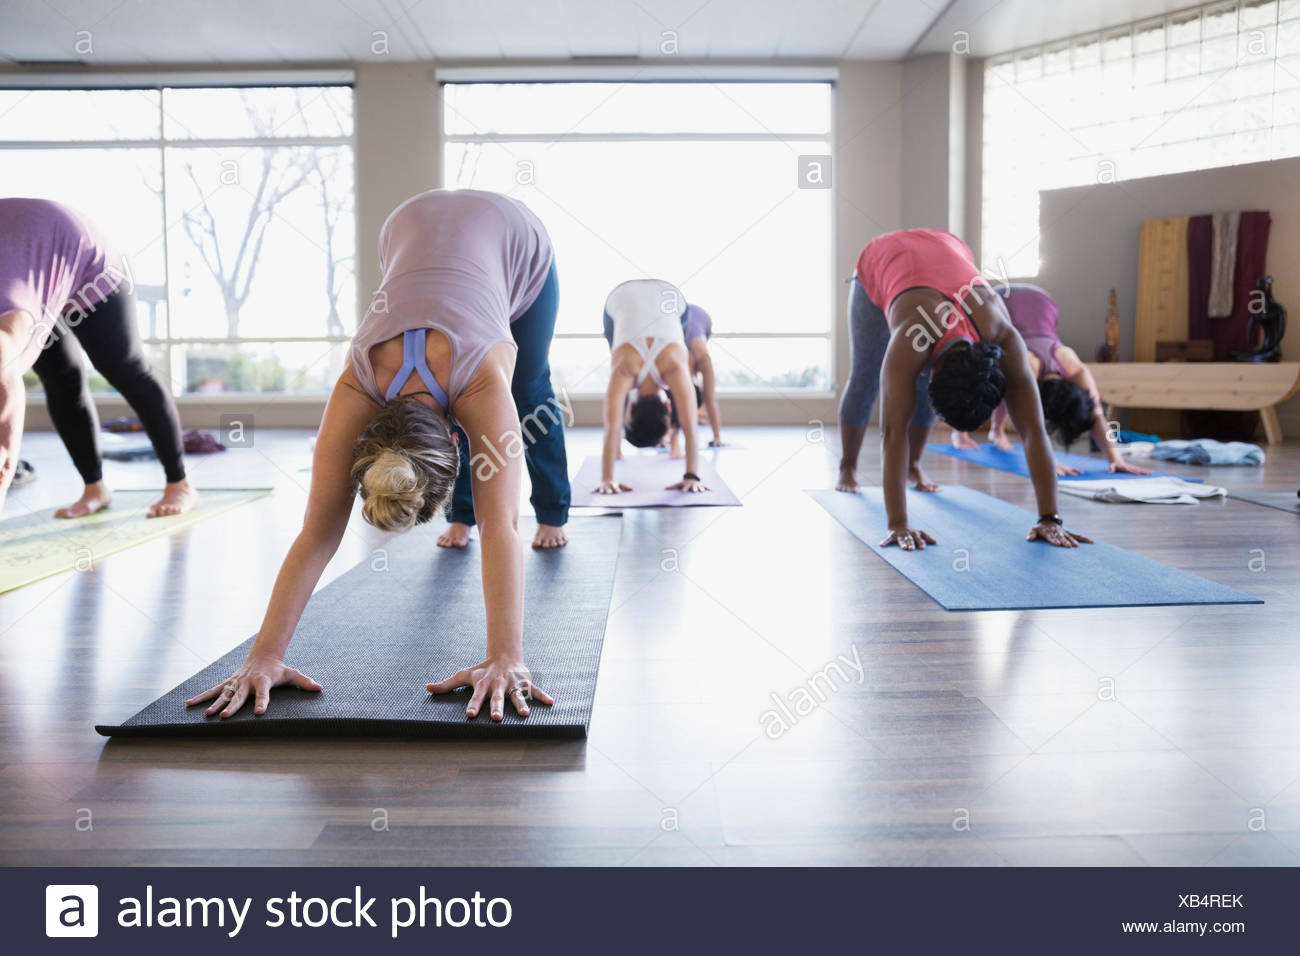 Women practicing downward facing dog in yoga class - Stock Image